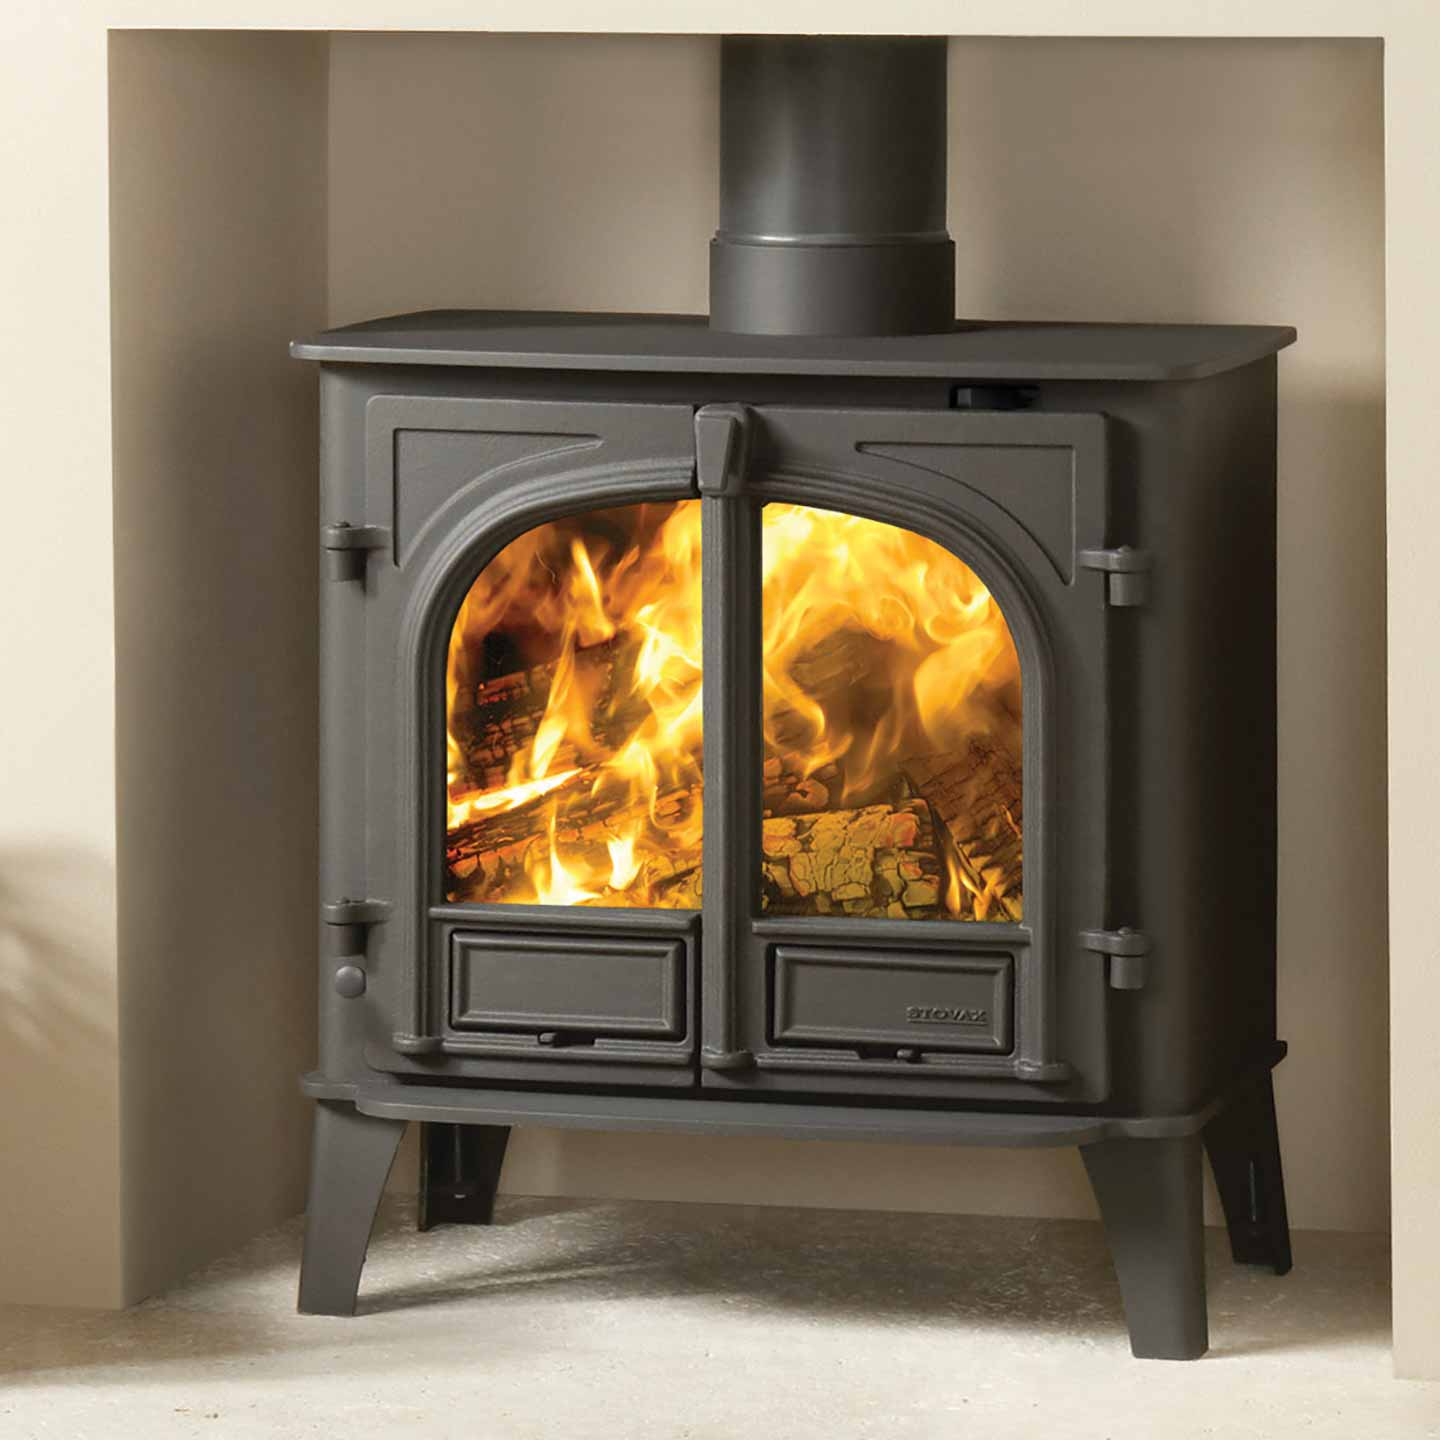 Stovax Stockton 8 Stove The Stove Site Approved Dealer